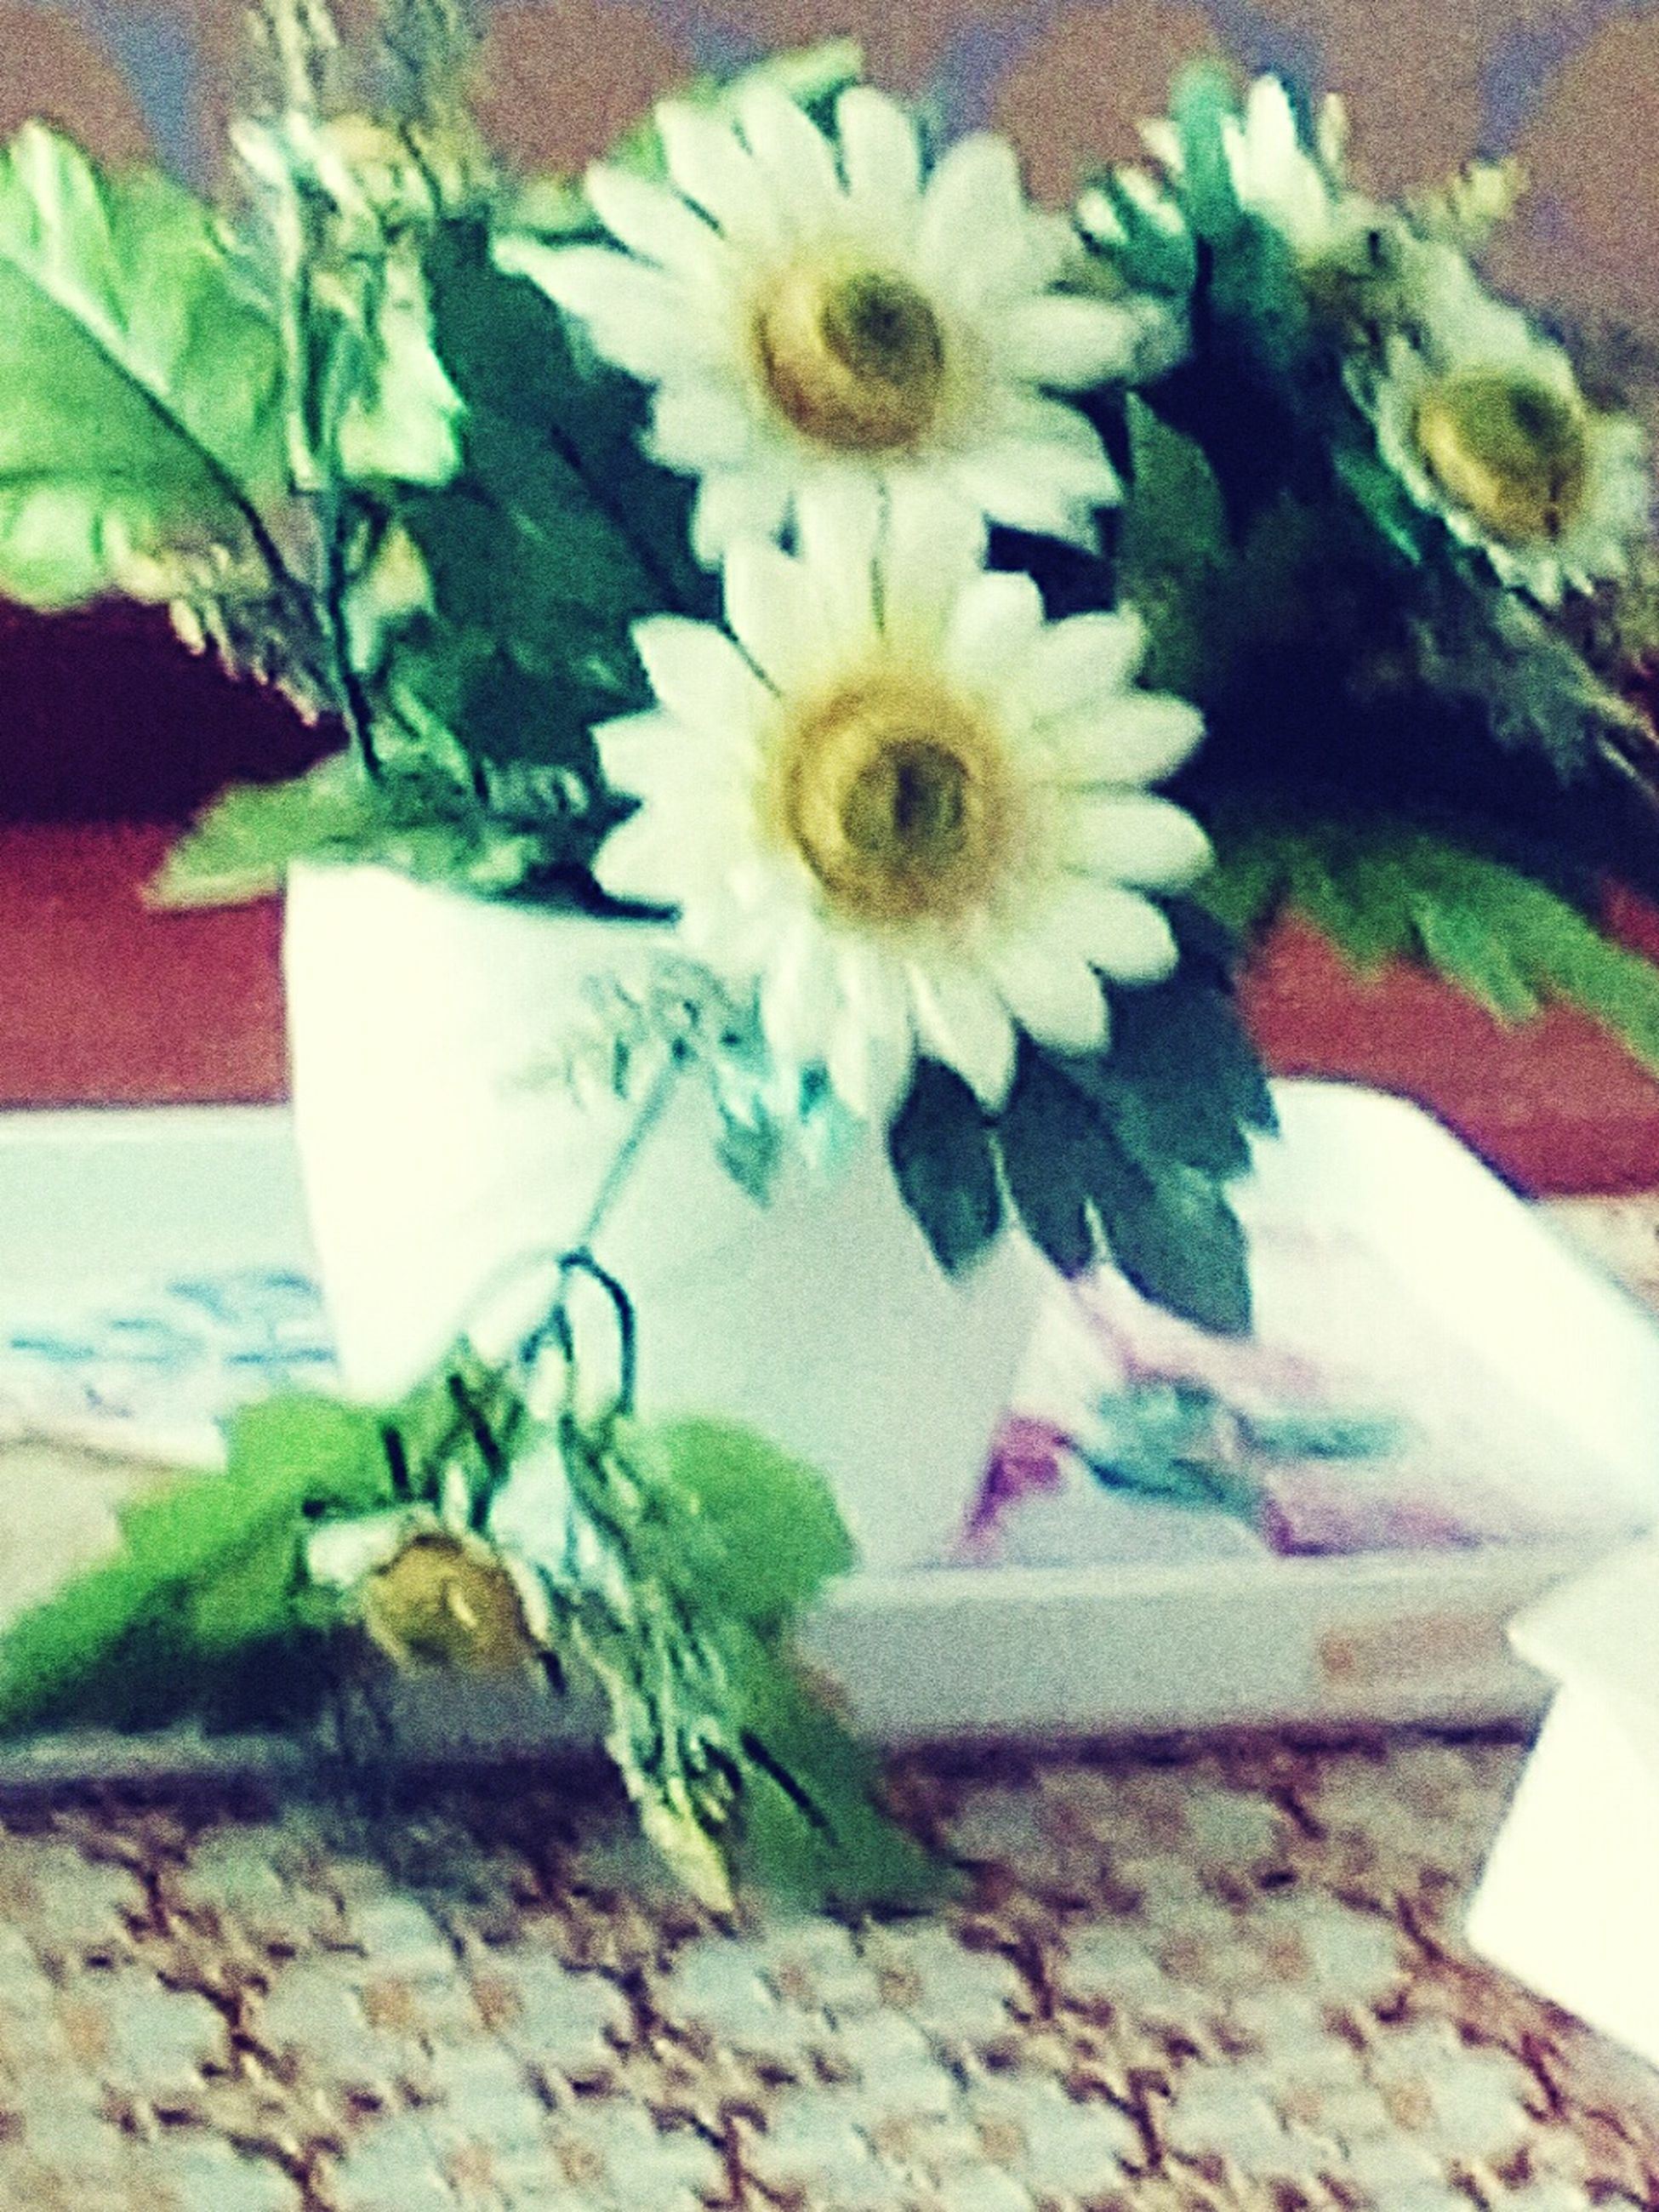 flower, indoors, freshness, high angle view, close-up, bouquet, celebration, bunch of flowers, plant, flower head, fragility, daisy, decoration, petal, flower arrangement, botany, multi colored, growth, beauty in nature, nature, creativity, celebration event